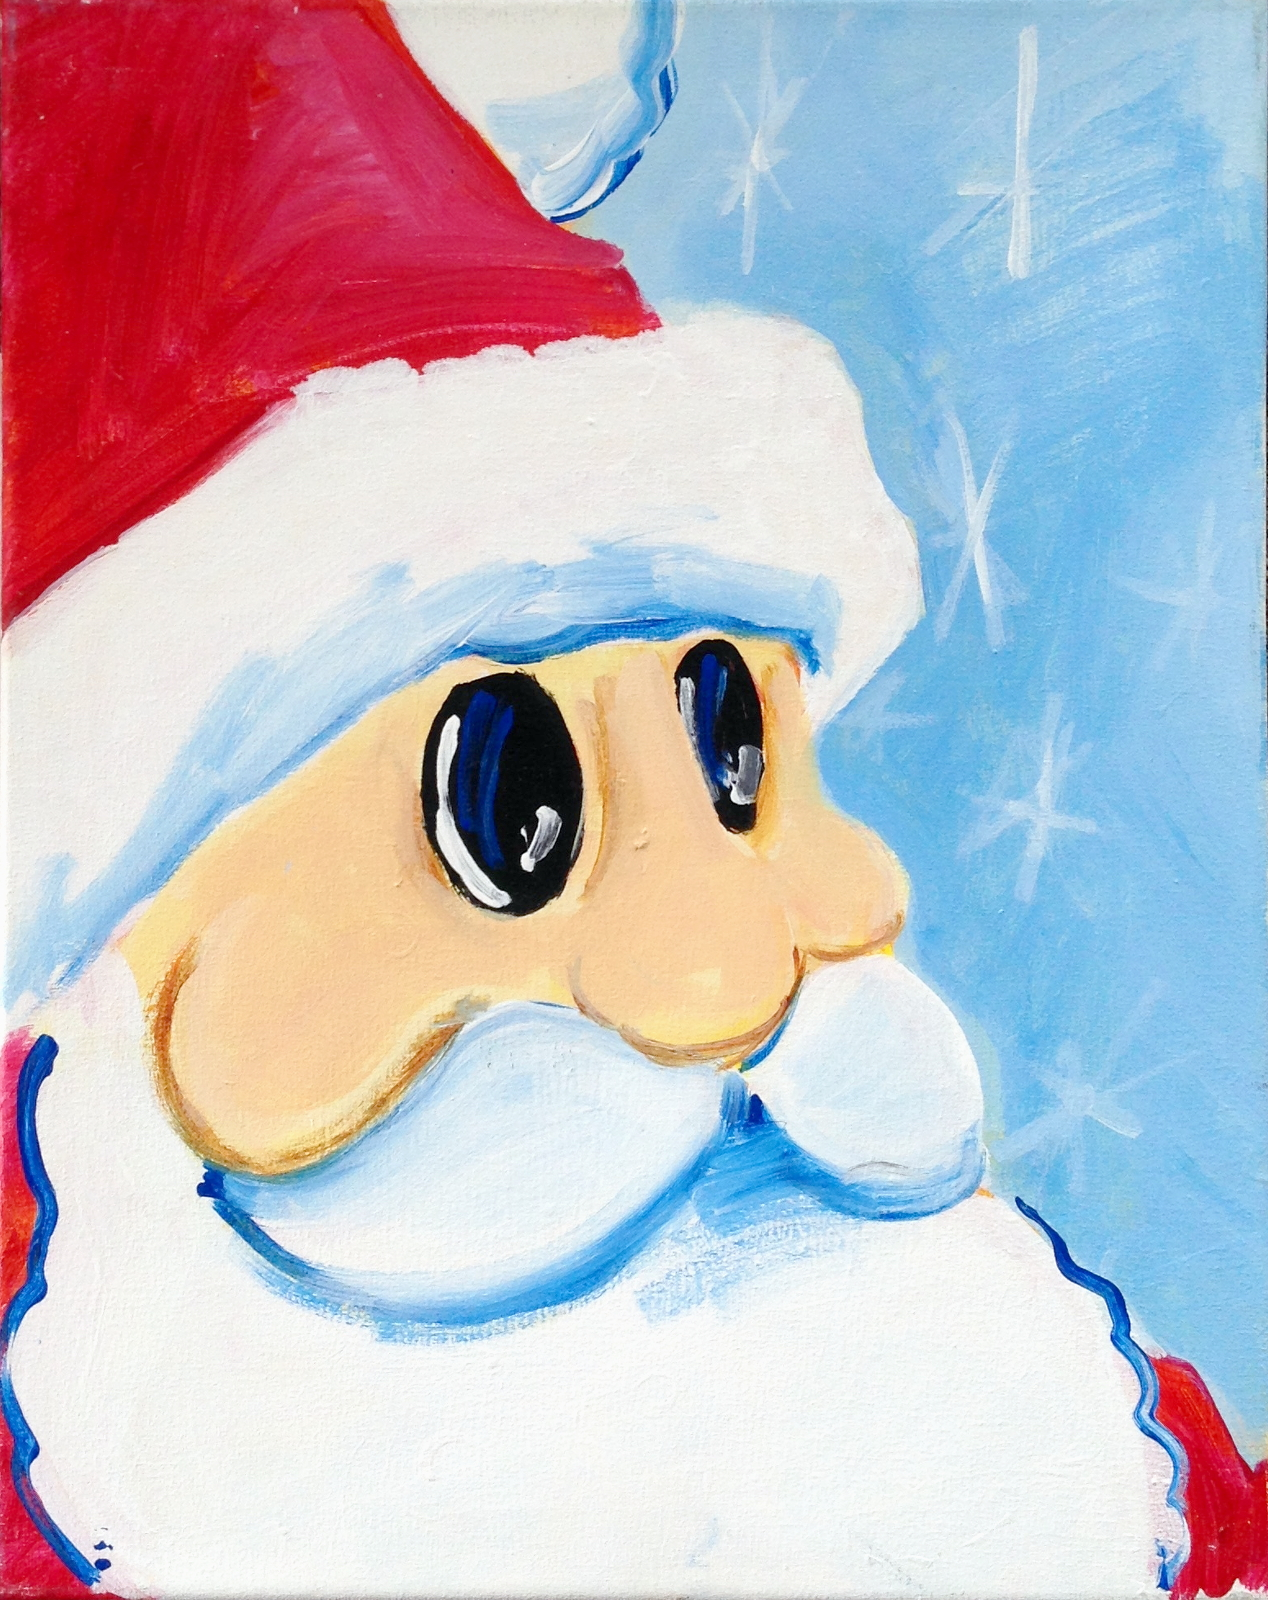 St. Nick | The Loaded Brush Paint & Sip Classes | loadedbrushpdx.com